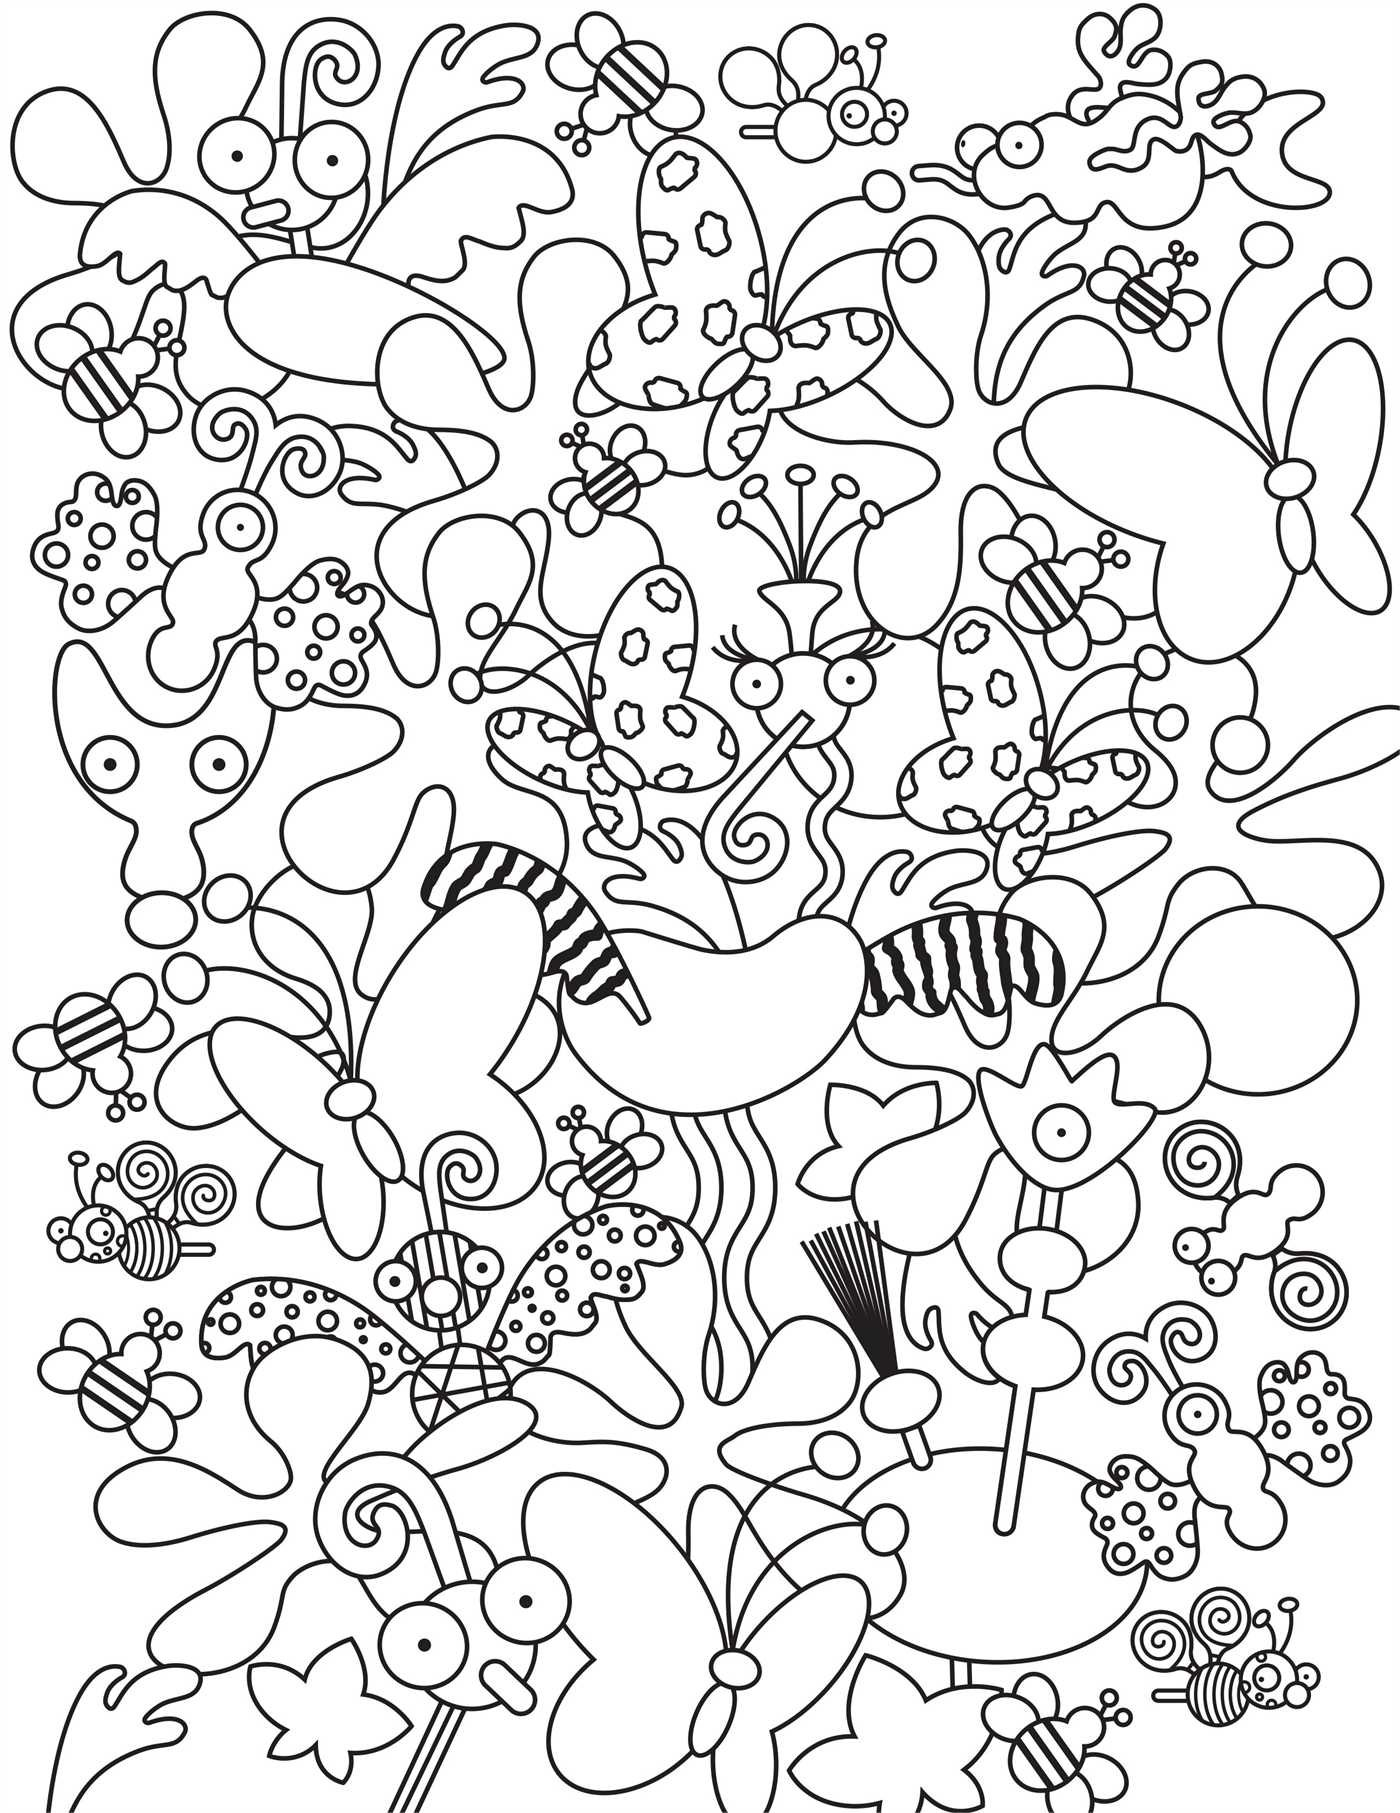 kids drawings for colouring simple owl drawing for kids coloring page download kids drawings colouring for